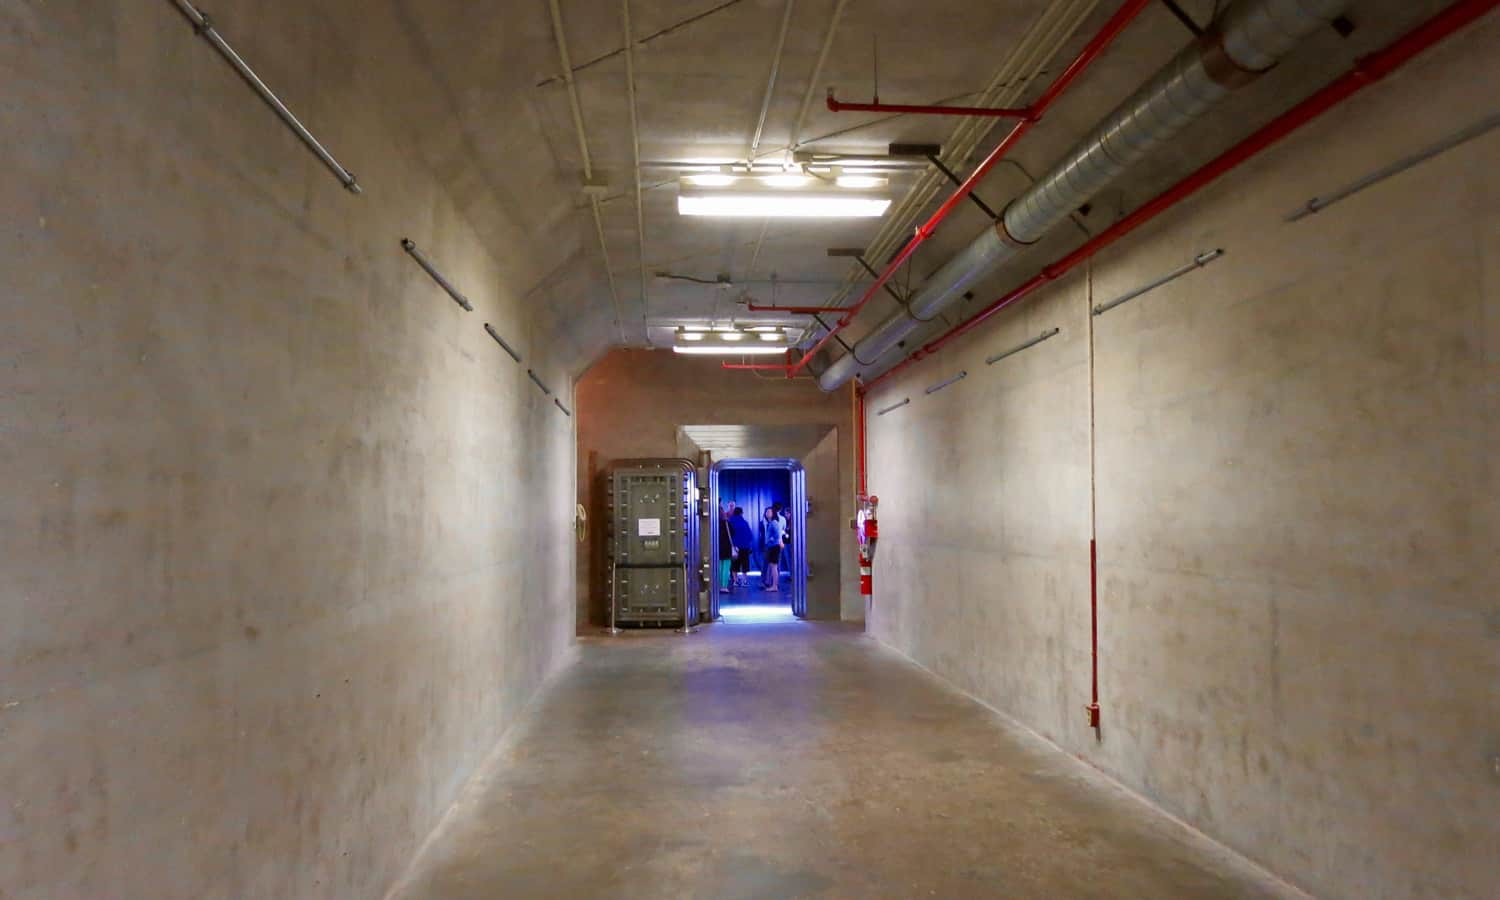 Approach to Bank of Canada vault